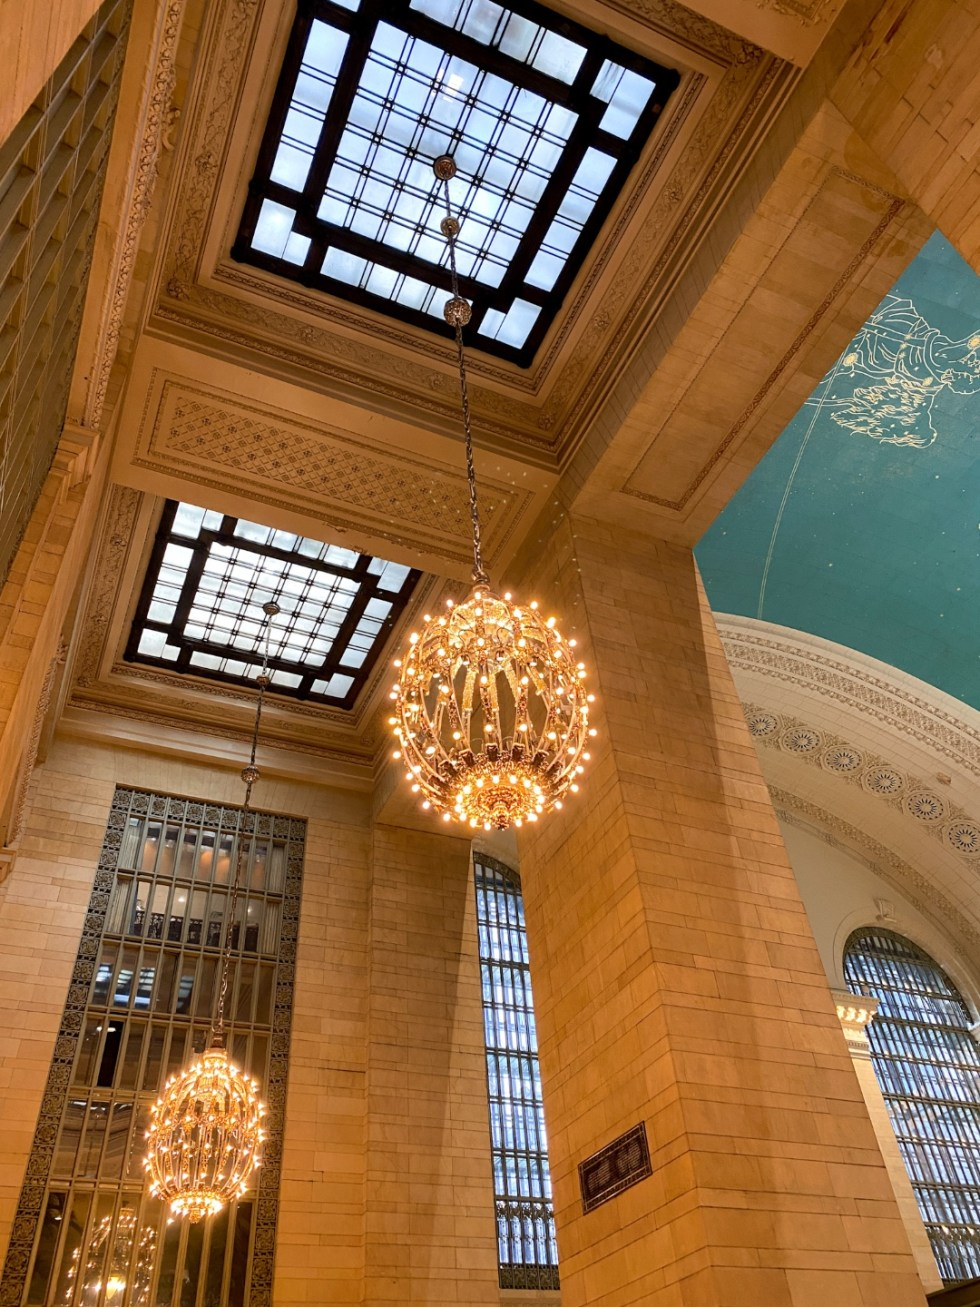 NYC Summer Weekend: Things to Do in NYC in the Summer - I'm Fixin' To - @imfixintoblog   NYC Summer Weekend by popular NC travel blog, I'm Fixin' To: image of the Grand Central Terminal lobby.